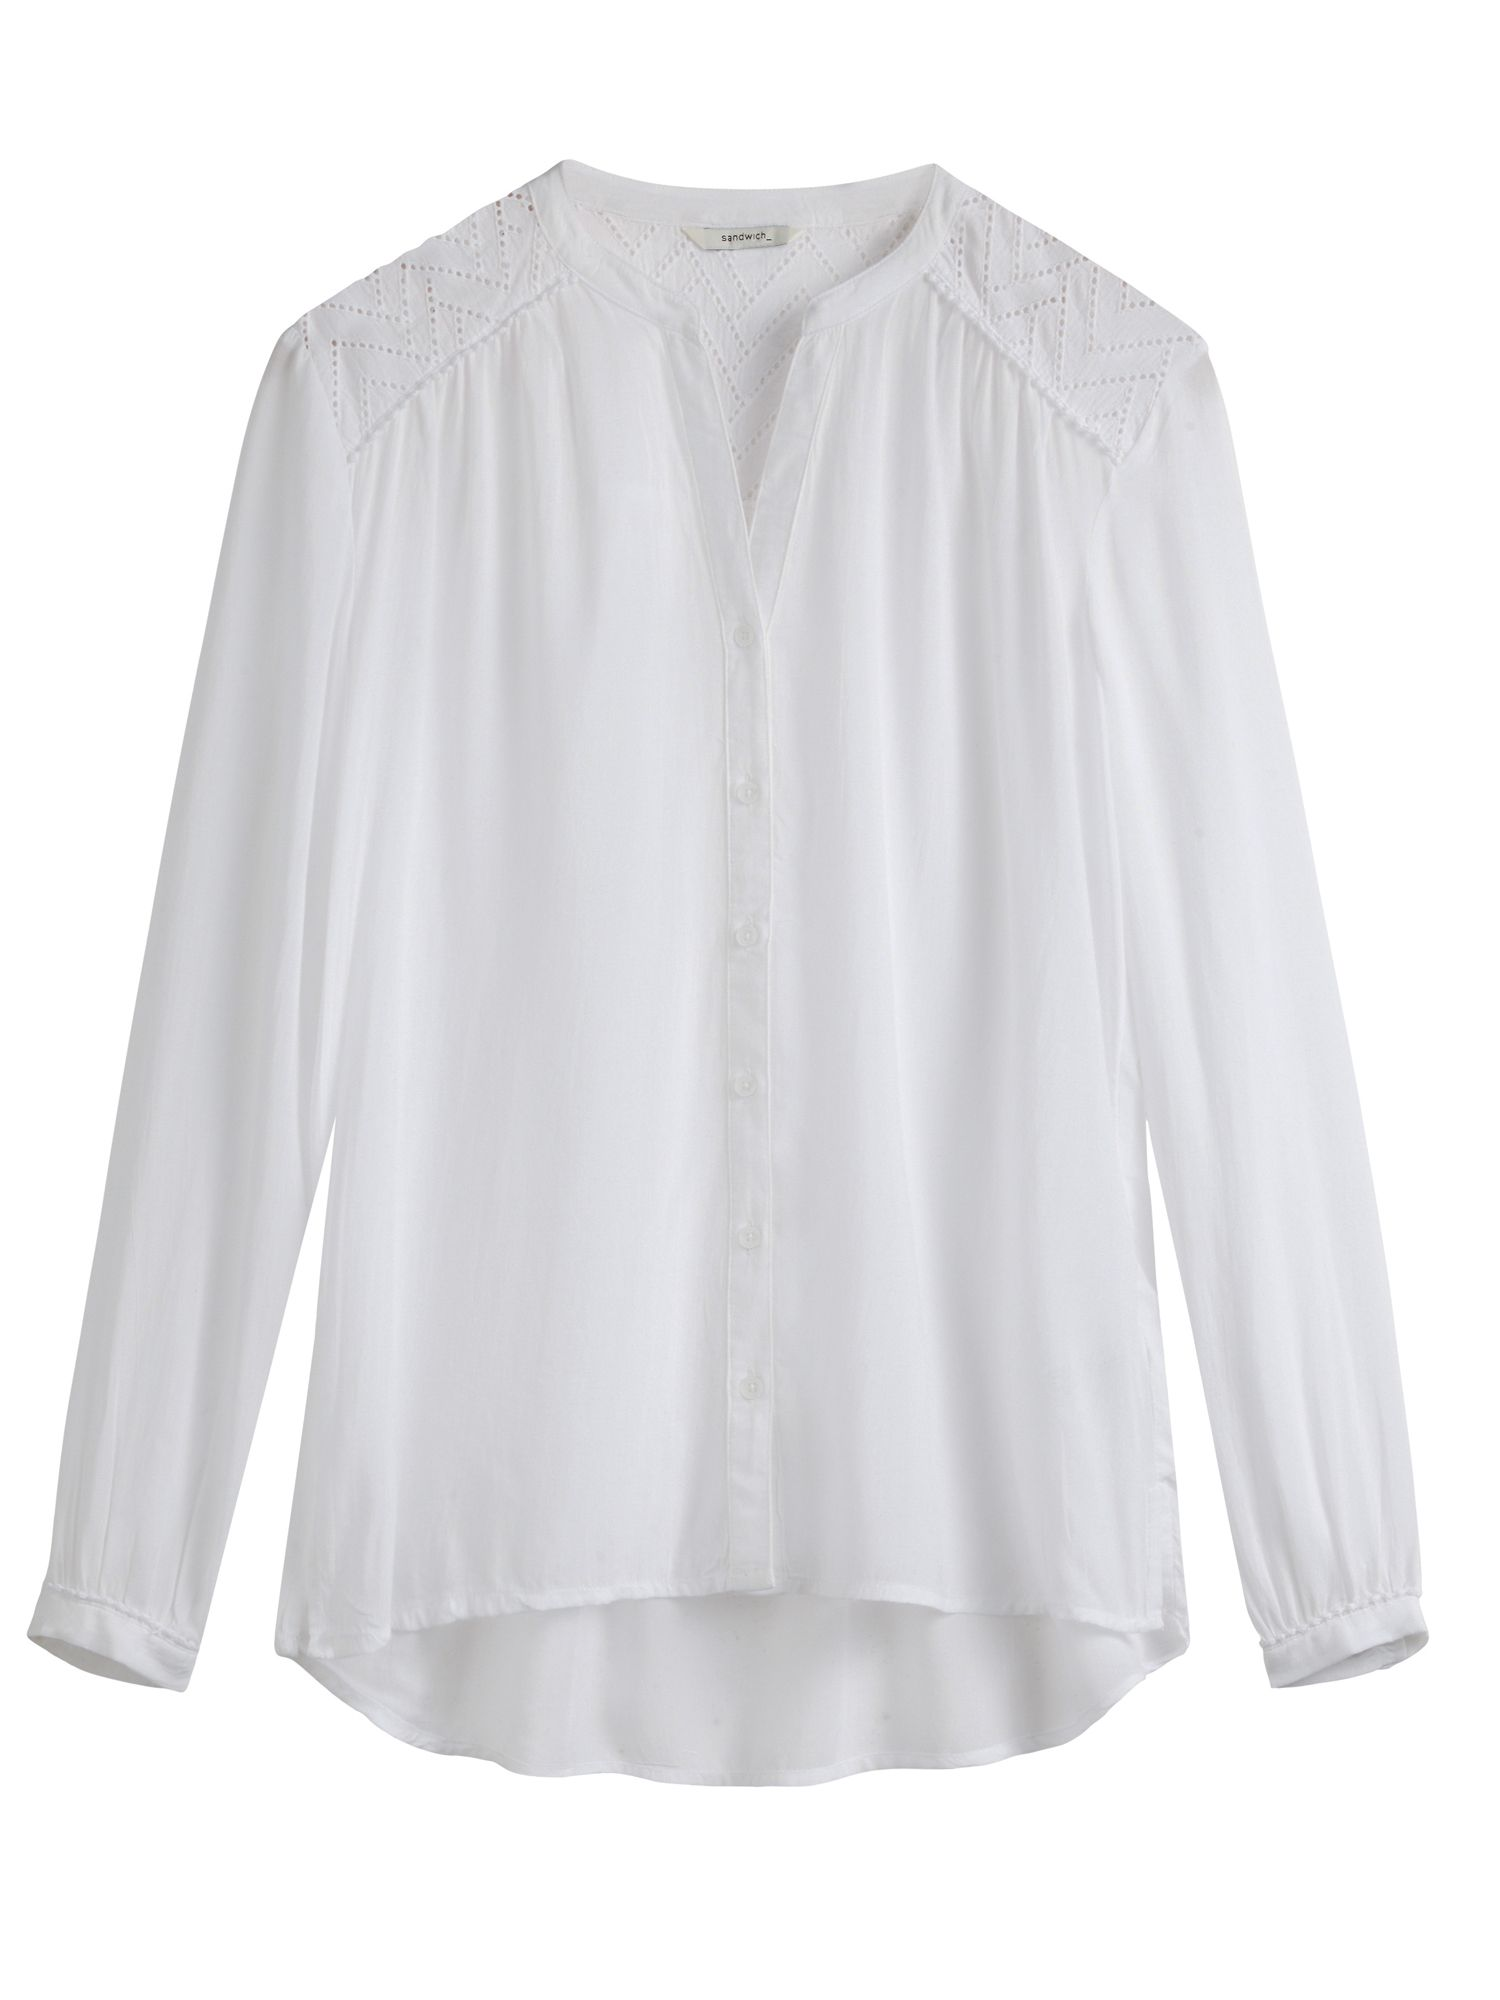 Sandwich Embroidered Detail Blouse, White